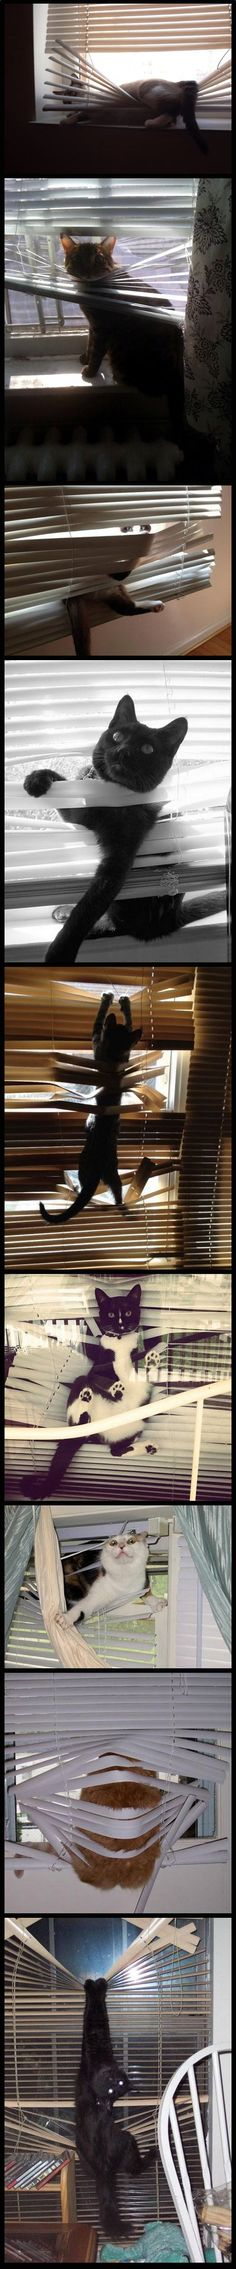 Cats and blinds